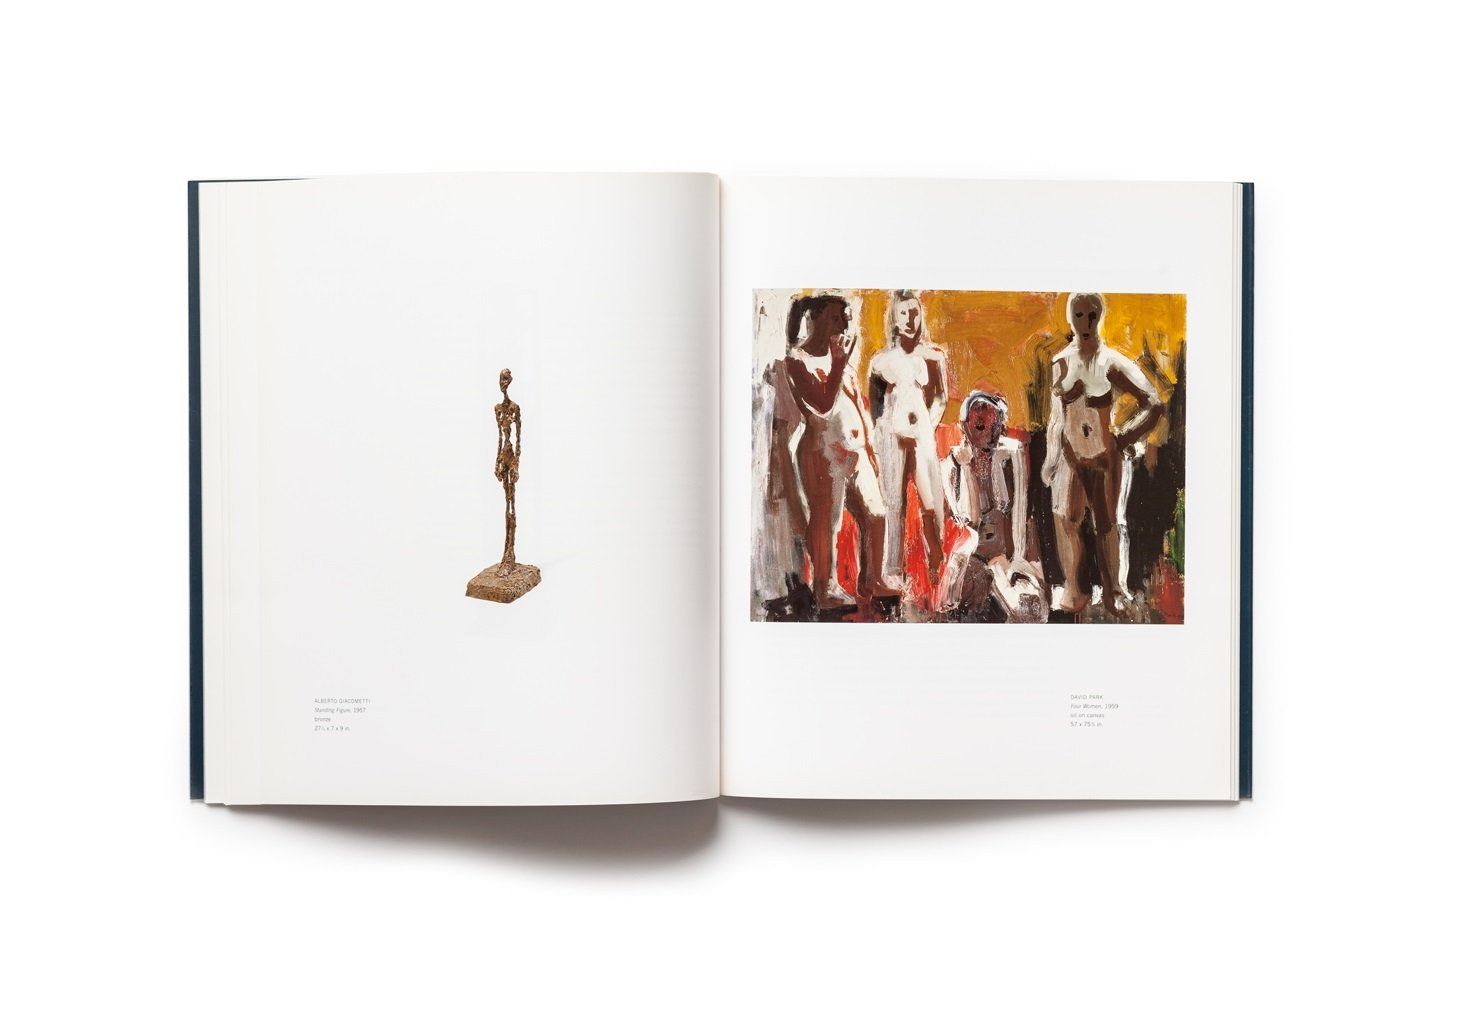 Celebrating Modern Art: Highlights of the Anderson Collection publication pages 38-39